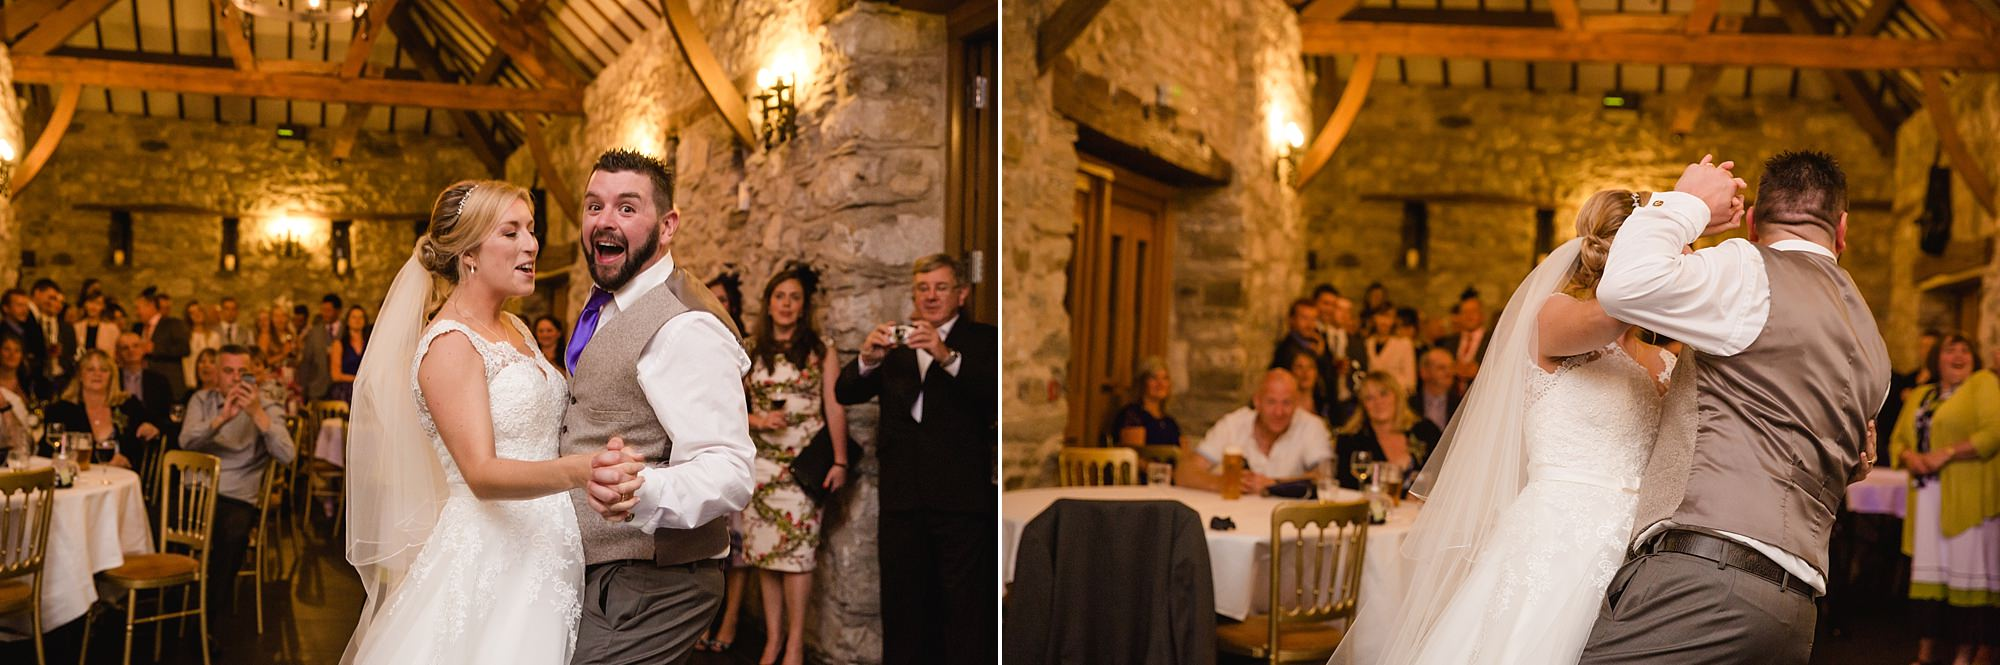 A fun wedding dance with bride and groom at Plas Isaf